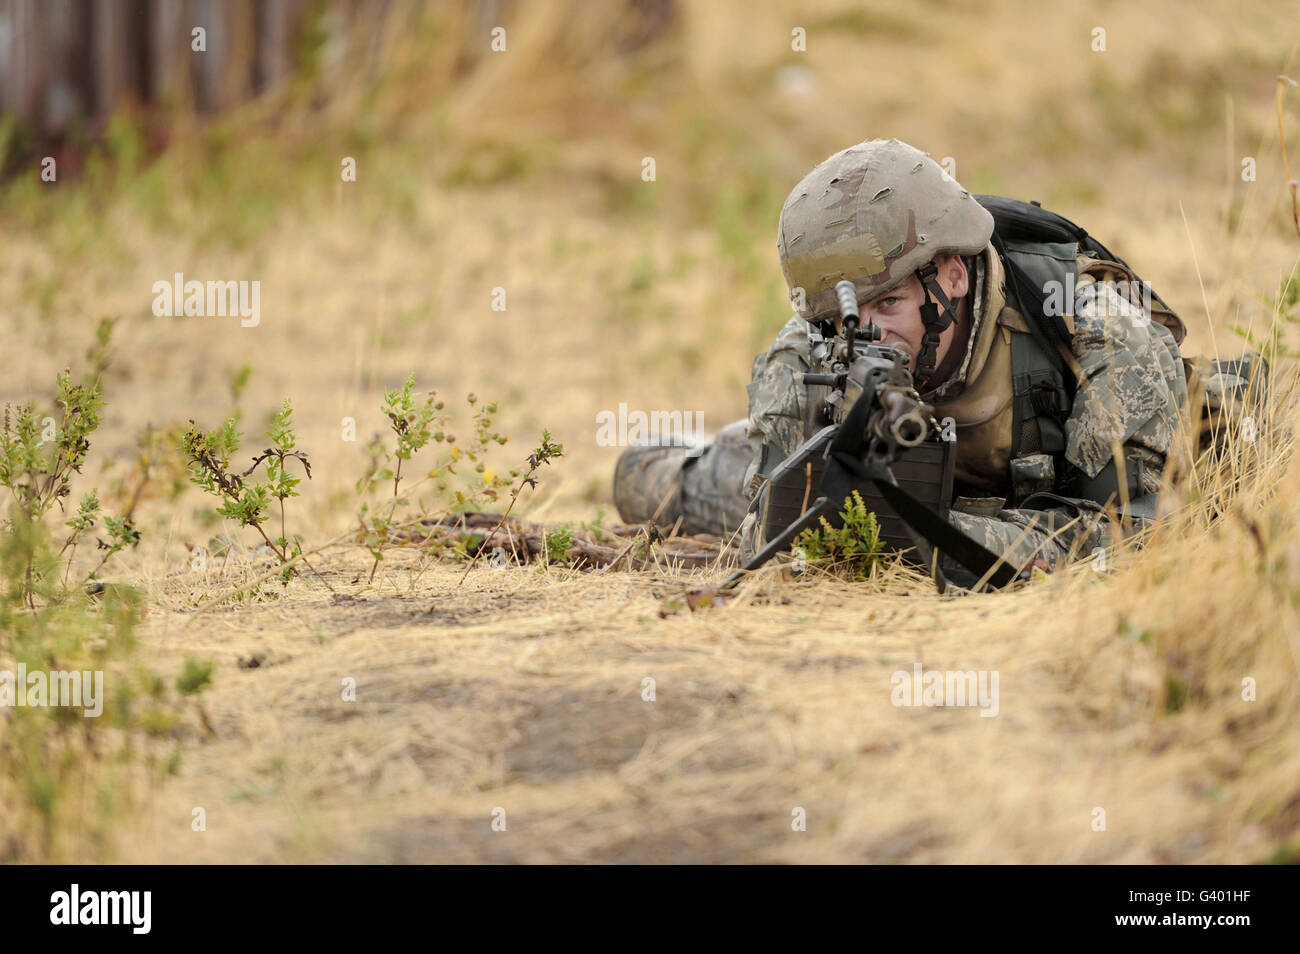 Airman sets up a perimeter during Operation Readiness Exercise. - Stock Image